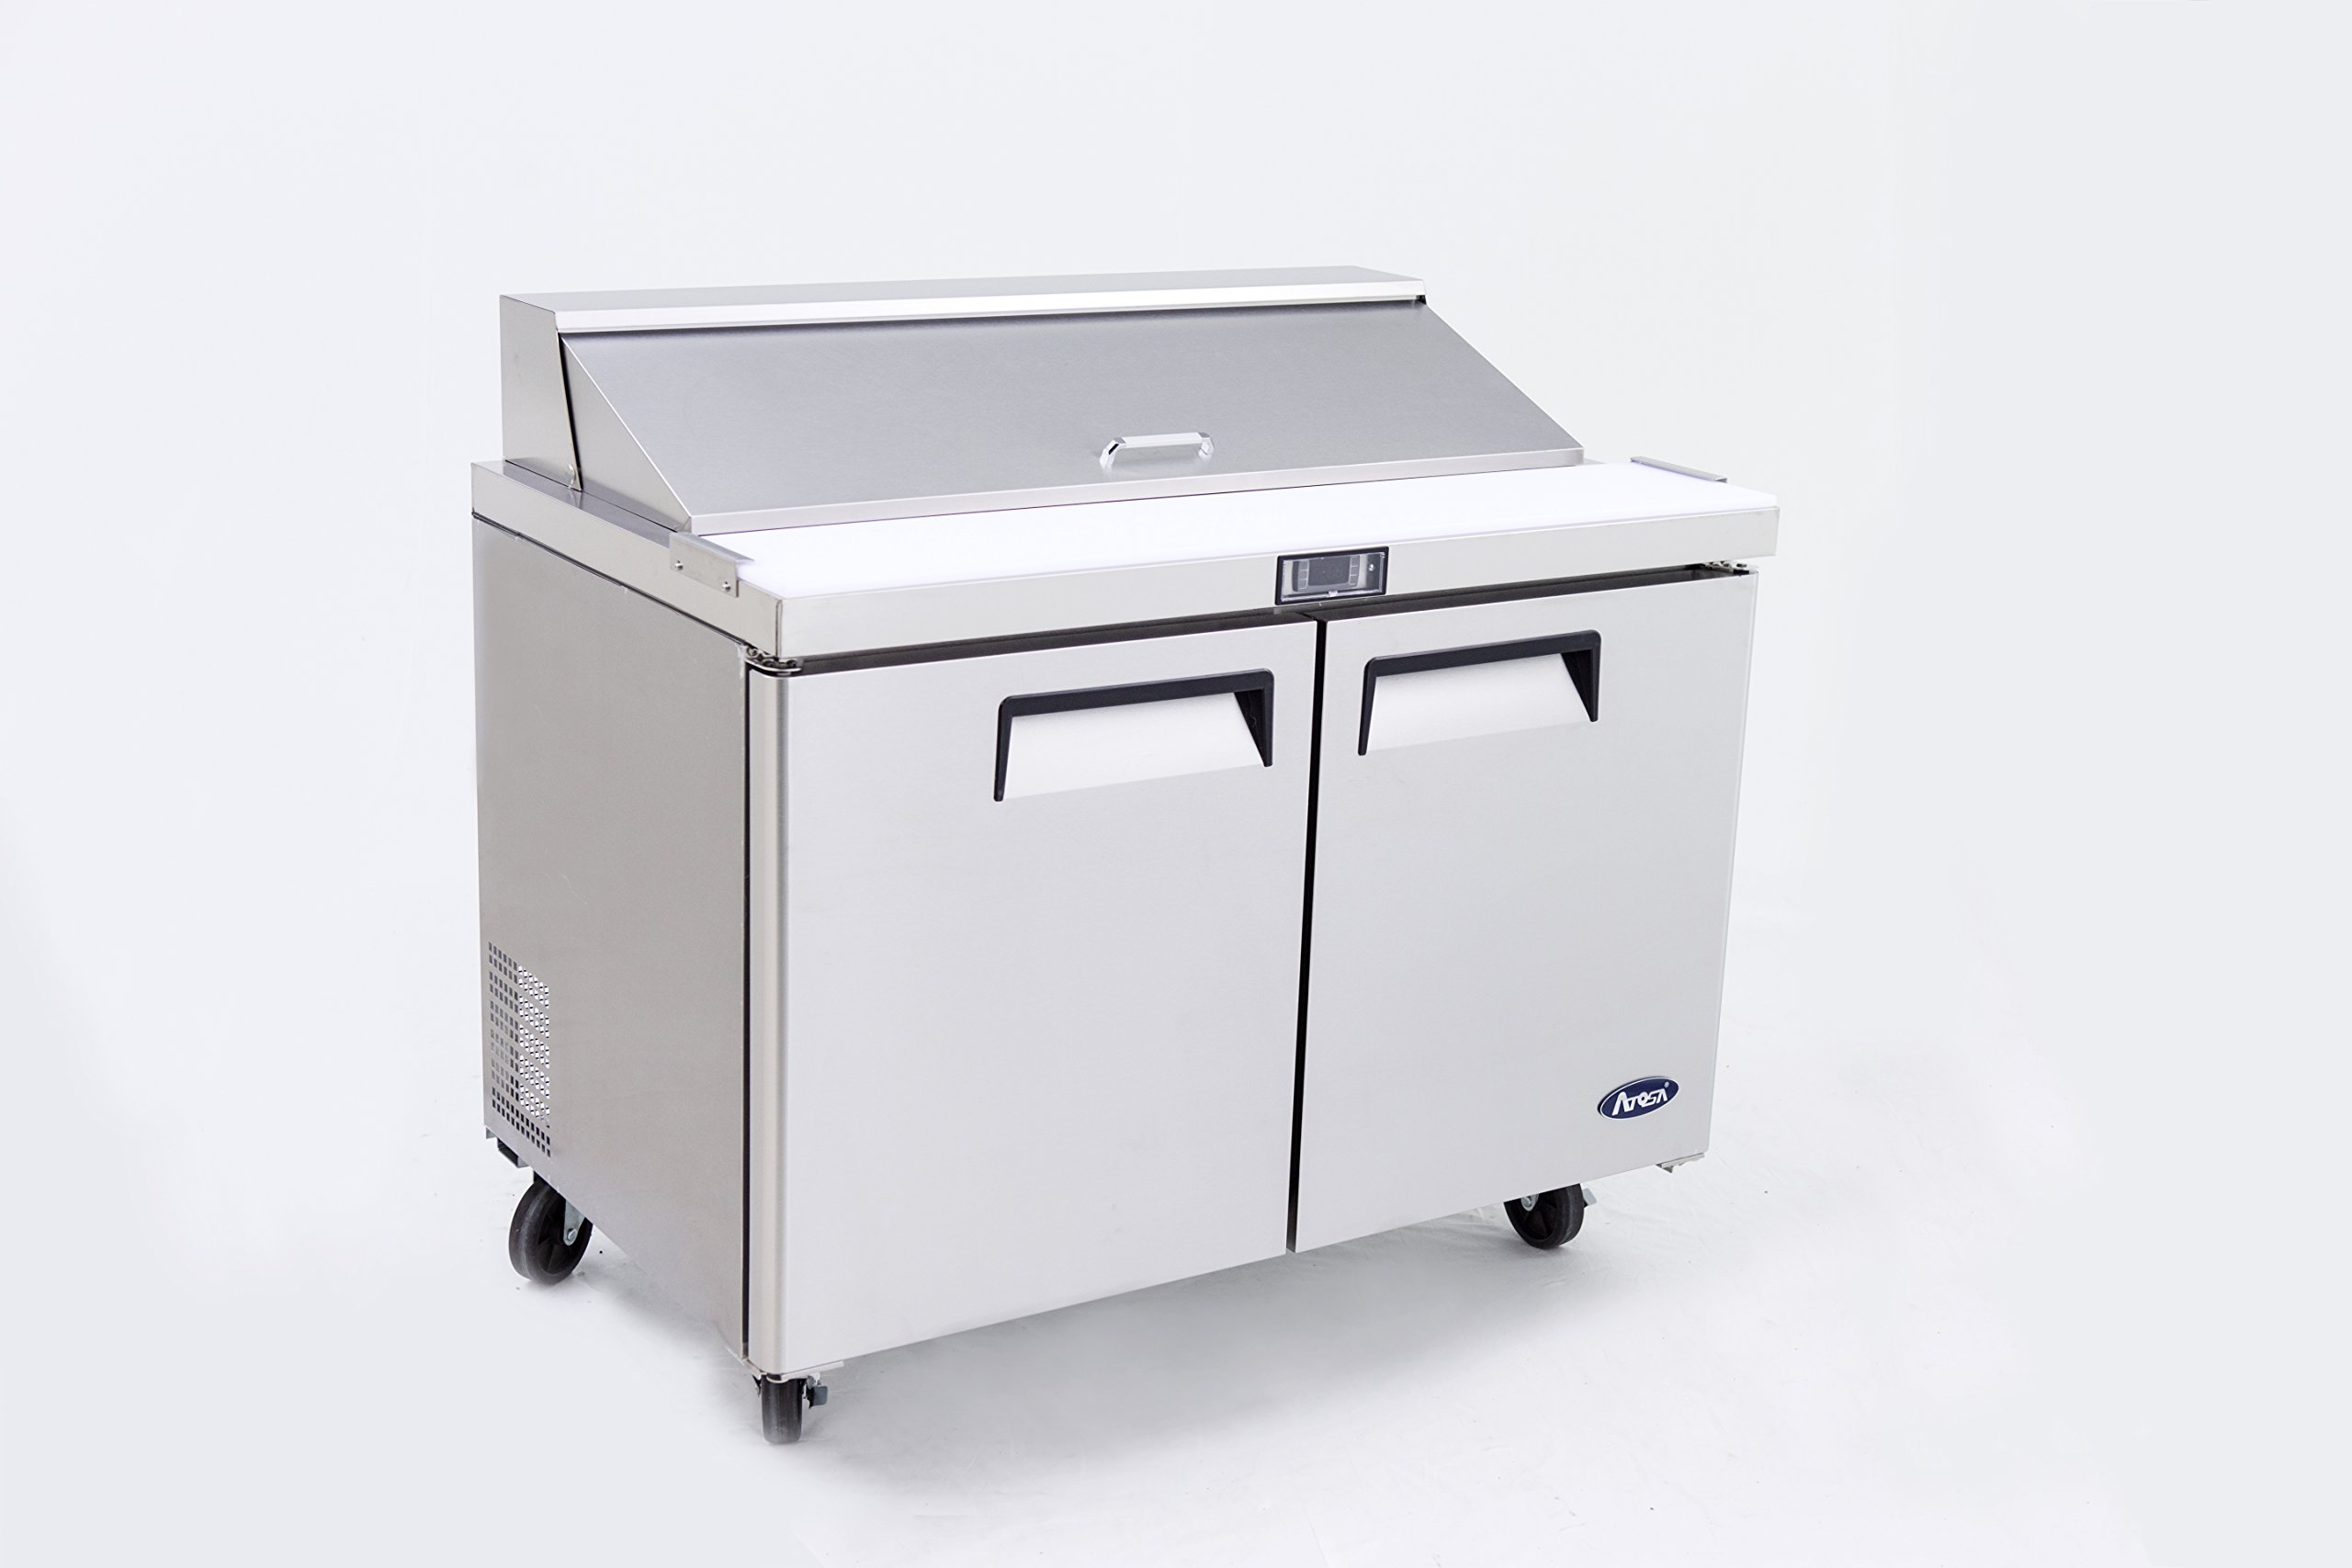 Atosa Usa MSF8302 Stainless Steel Sandwich Prep Table 48'' 2-Door Refrigerator by Atosa